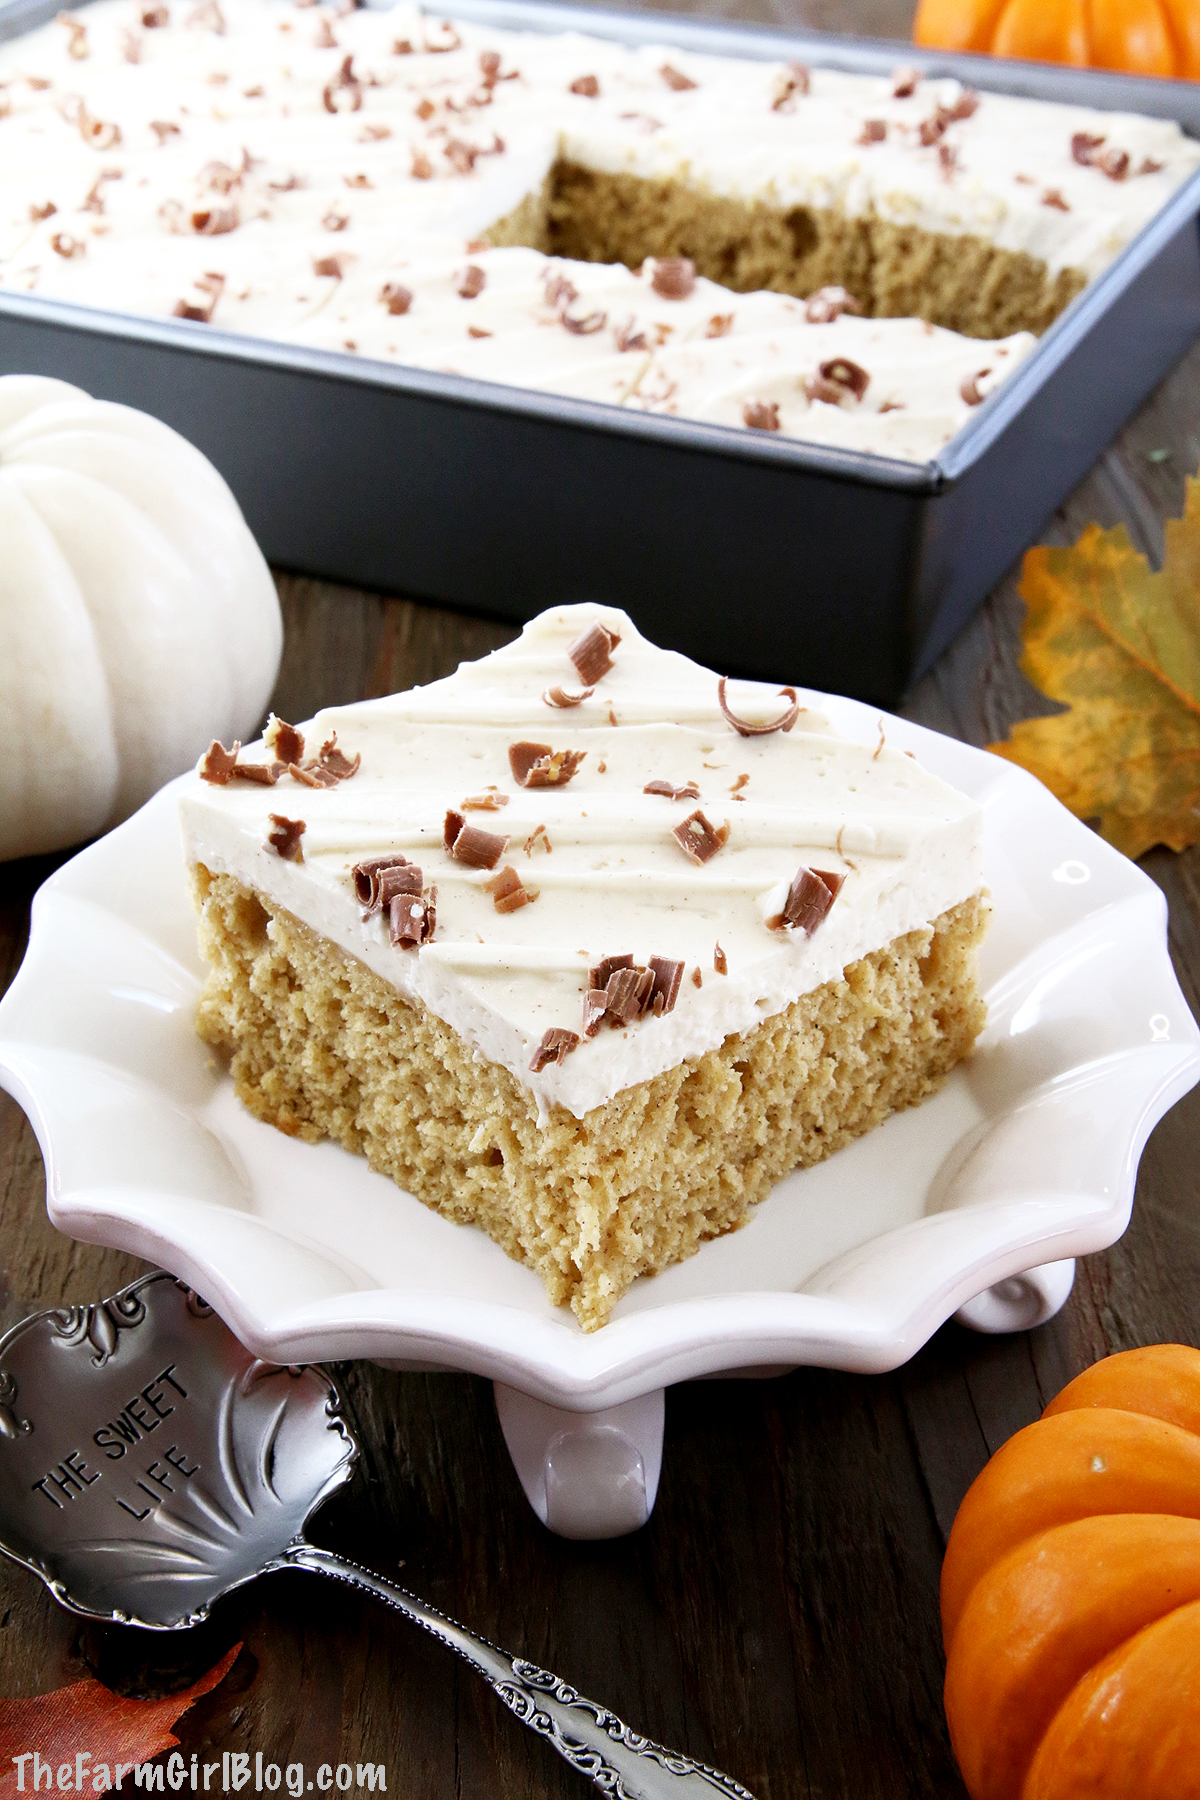 This Pumpkin Sheet Cake with Cinnamon Cream Cheese Frosting is irresistibly delicious. It's super soft and moist sponge has an incredible pumpkin flavor. Topped with a sweet and tangy cinnamon cream cheese frosting just makes this cake shine and attract pumpkin lovers! #pumpkincake #cinnamoncreamcheesefrosting #homemadepumpkinpuree #homegrownpumpkin